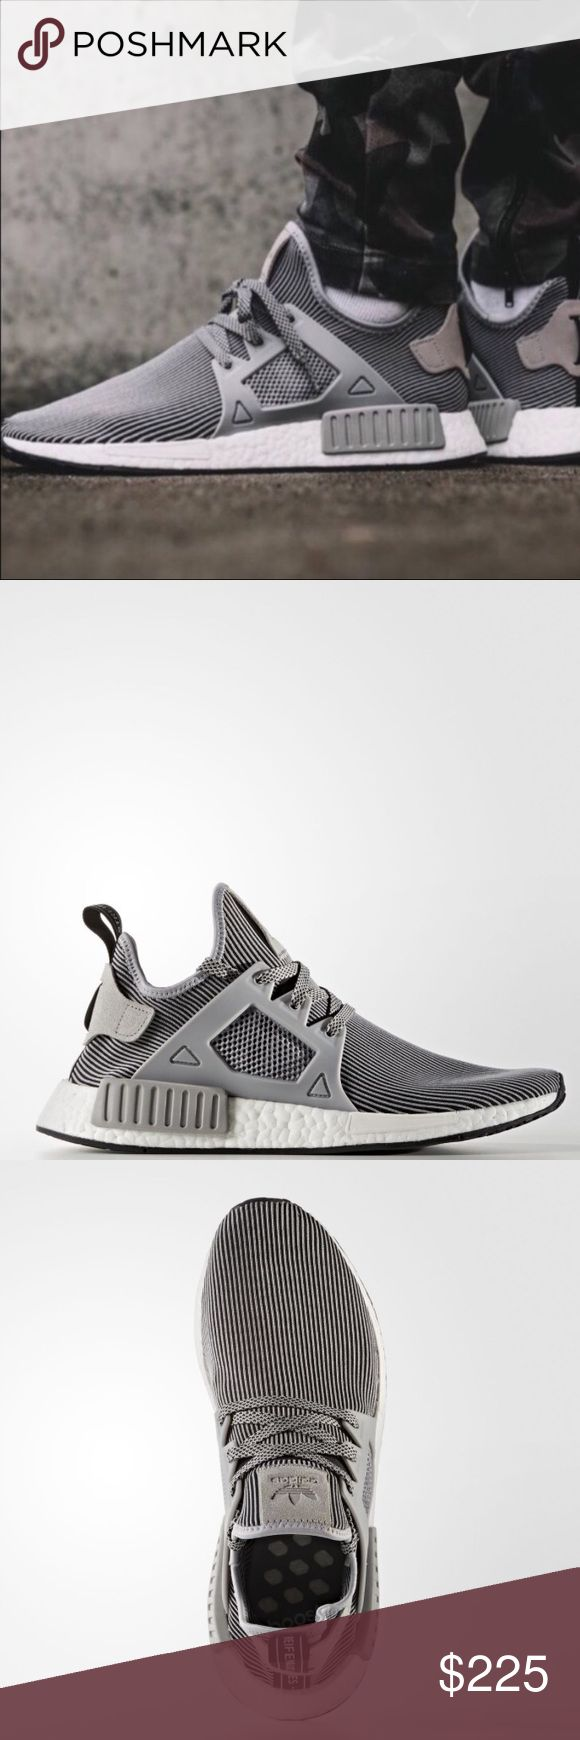 ADIDAS PRIMEKNIT NMD XR1 SNEAKERS -The Size 9 but will fit Men 9-10!   -100% AUTHENTIC & COMES WITH BOX!  -NO FLAWS! -Price is just about firm on this item due to rarity of colorway and size.    WILL LIST ON VINTED OR FASHION STASH LOWER  NO TRADES/HOLDS Adidas Shoes Sneakers